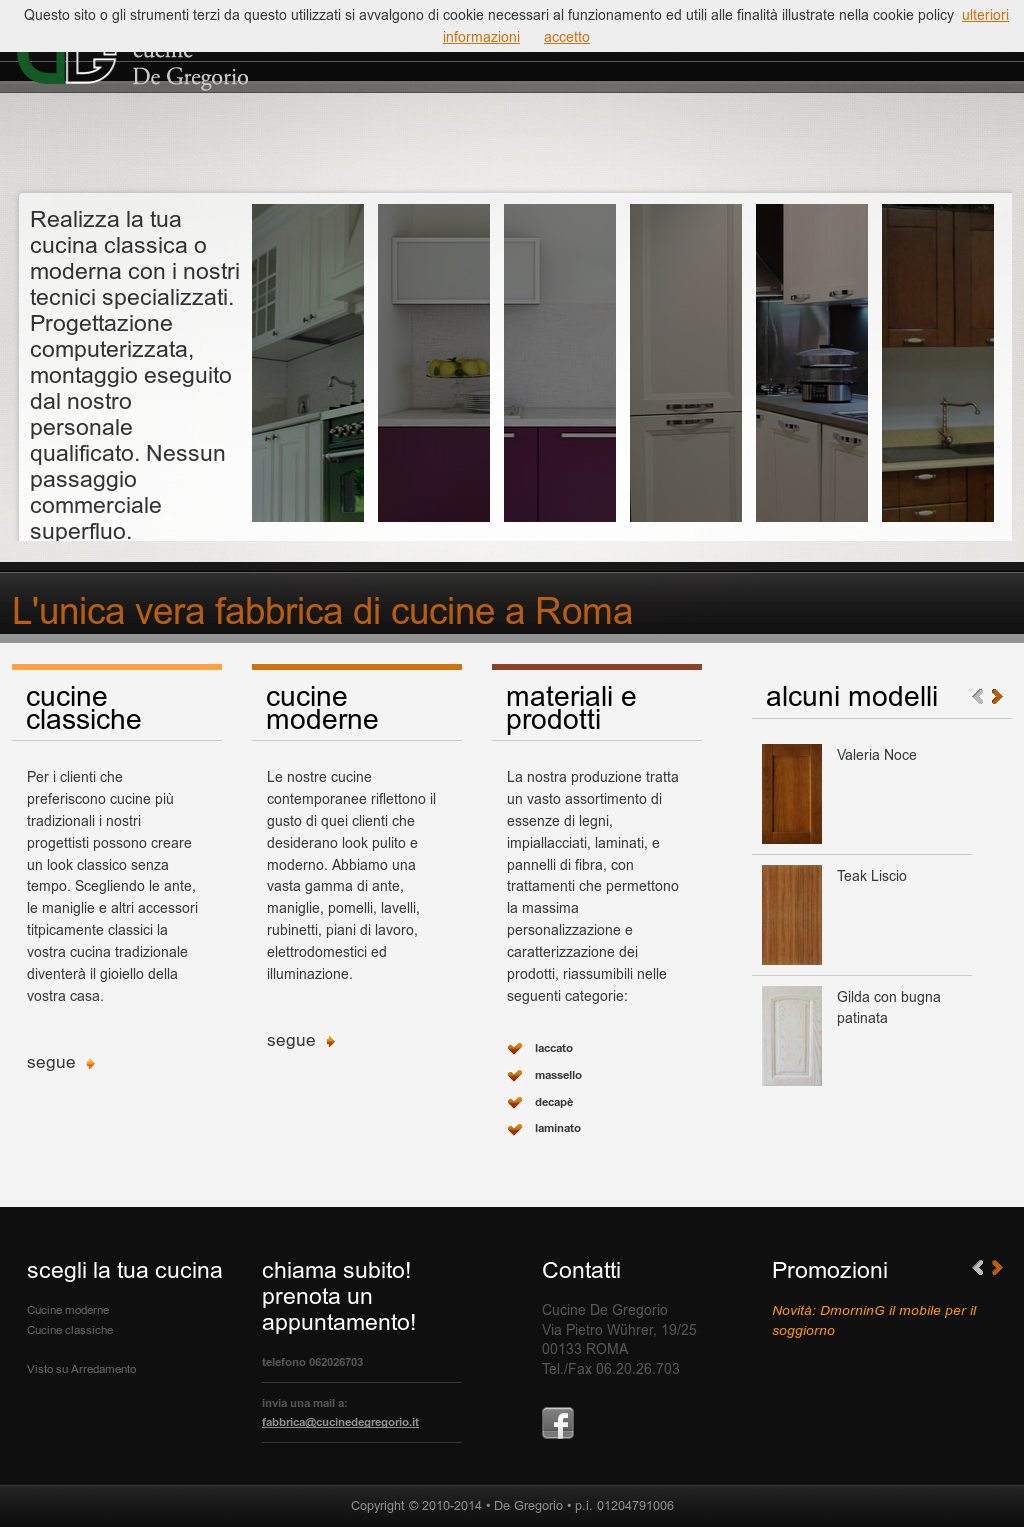 Cucine Dg Competitors, Revenue and Employees - Owler Company ...